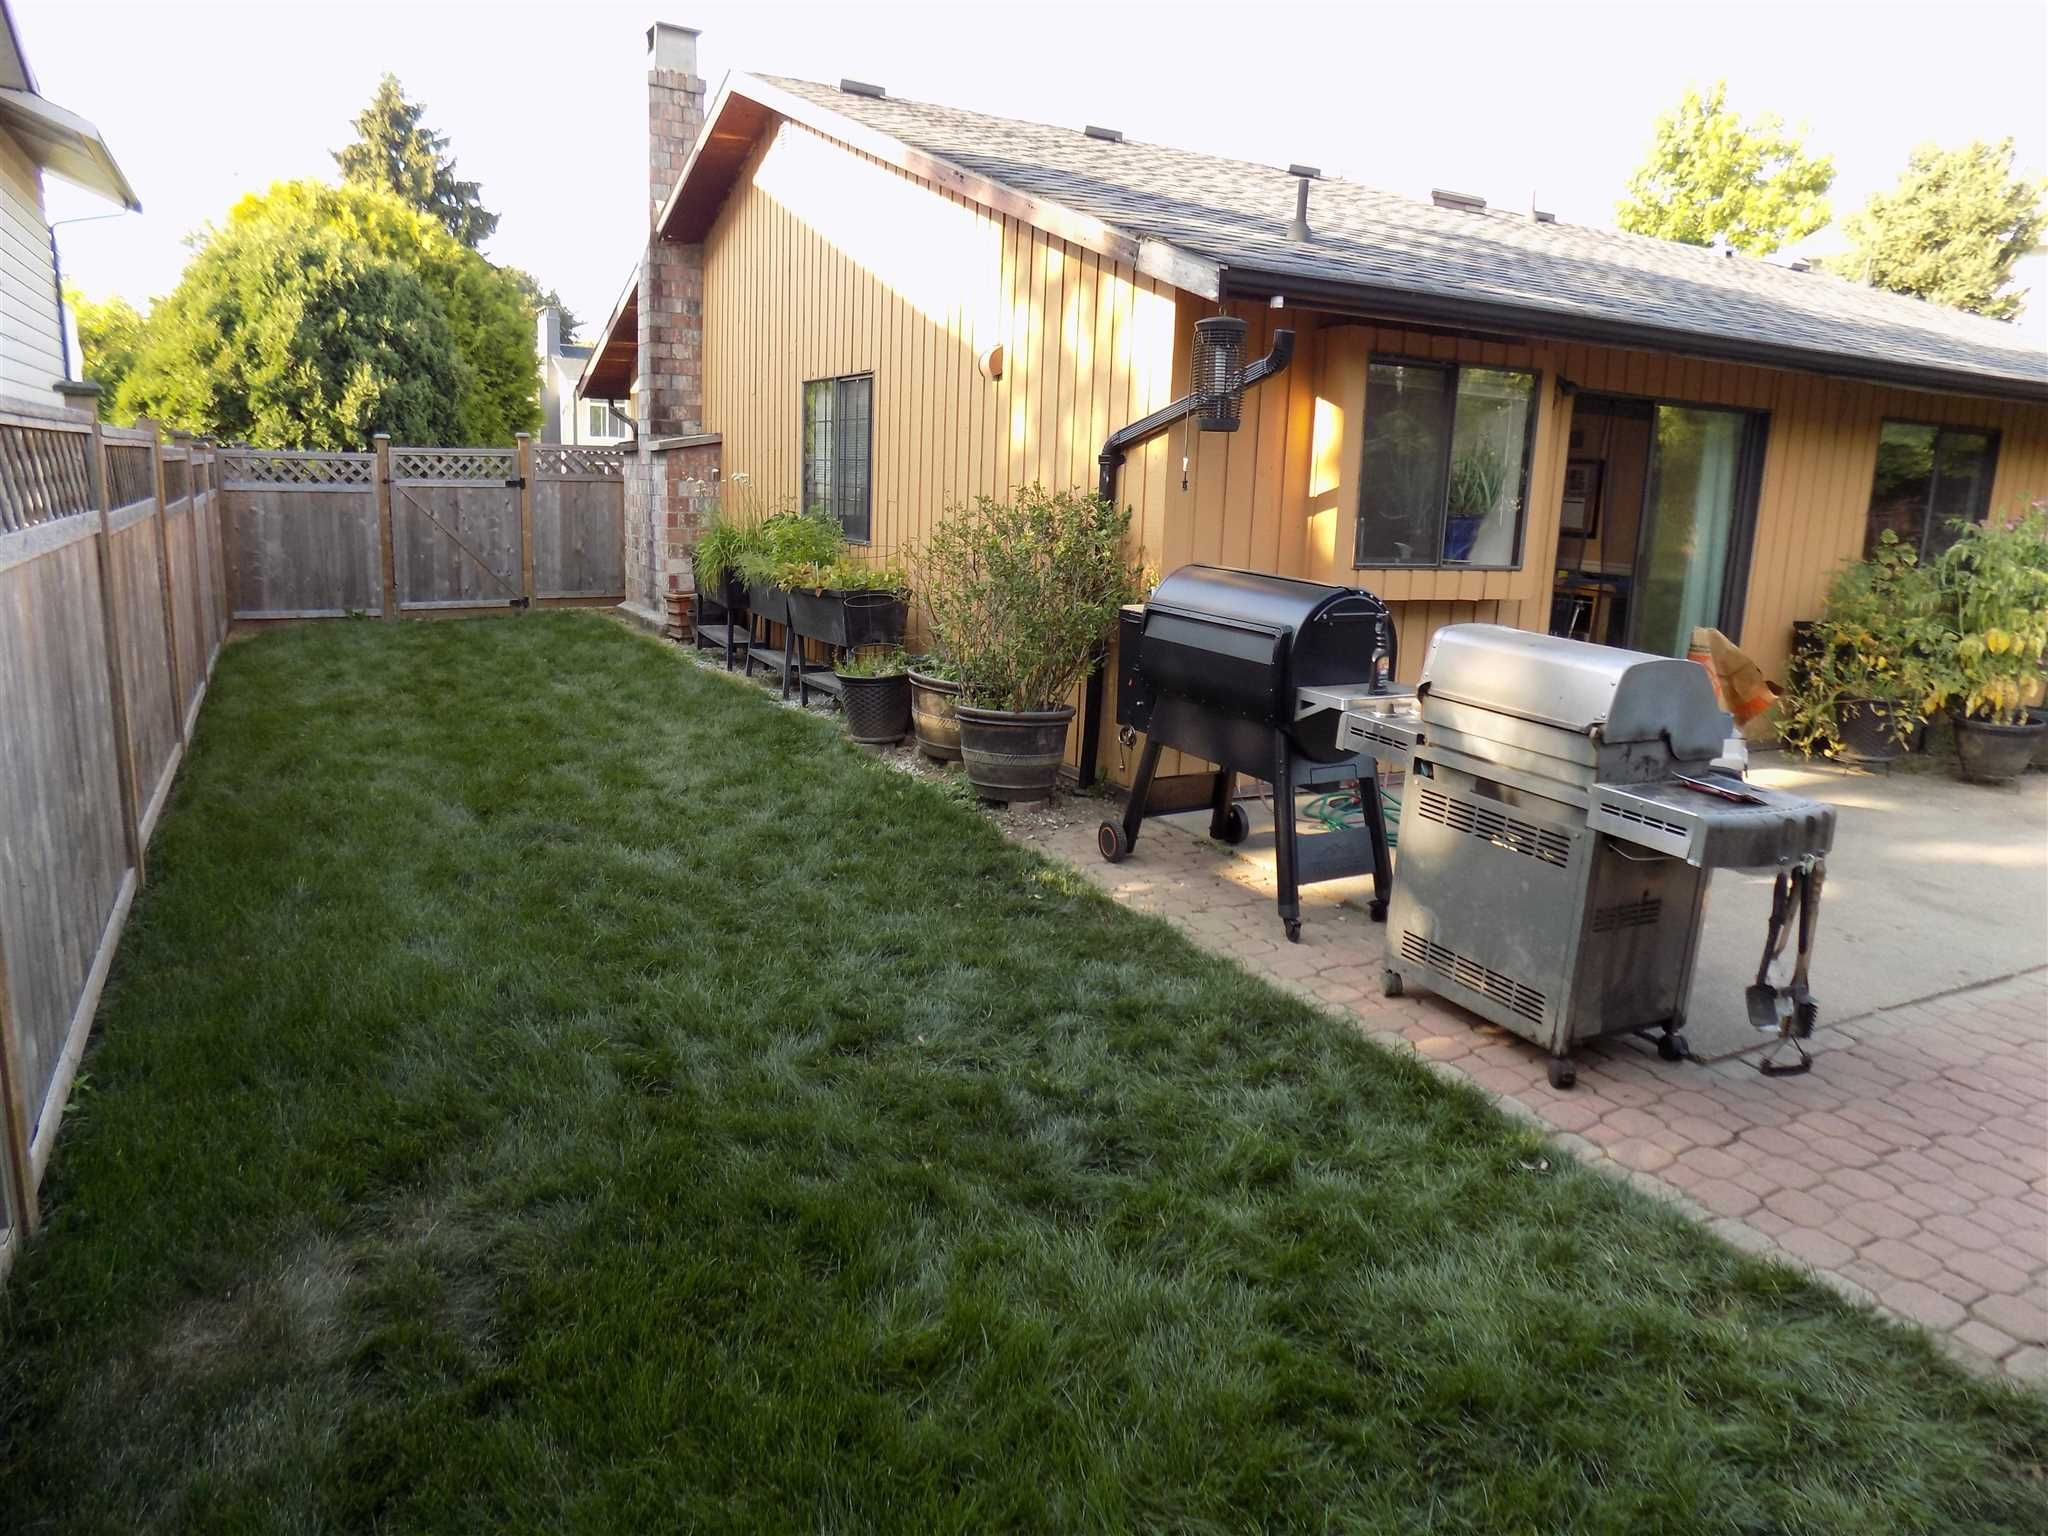 Photo 18: Photos: 32836 CAPILANO Place in Abbotsford: Central Abbotsford House for sale : MLS®# R2605248